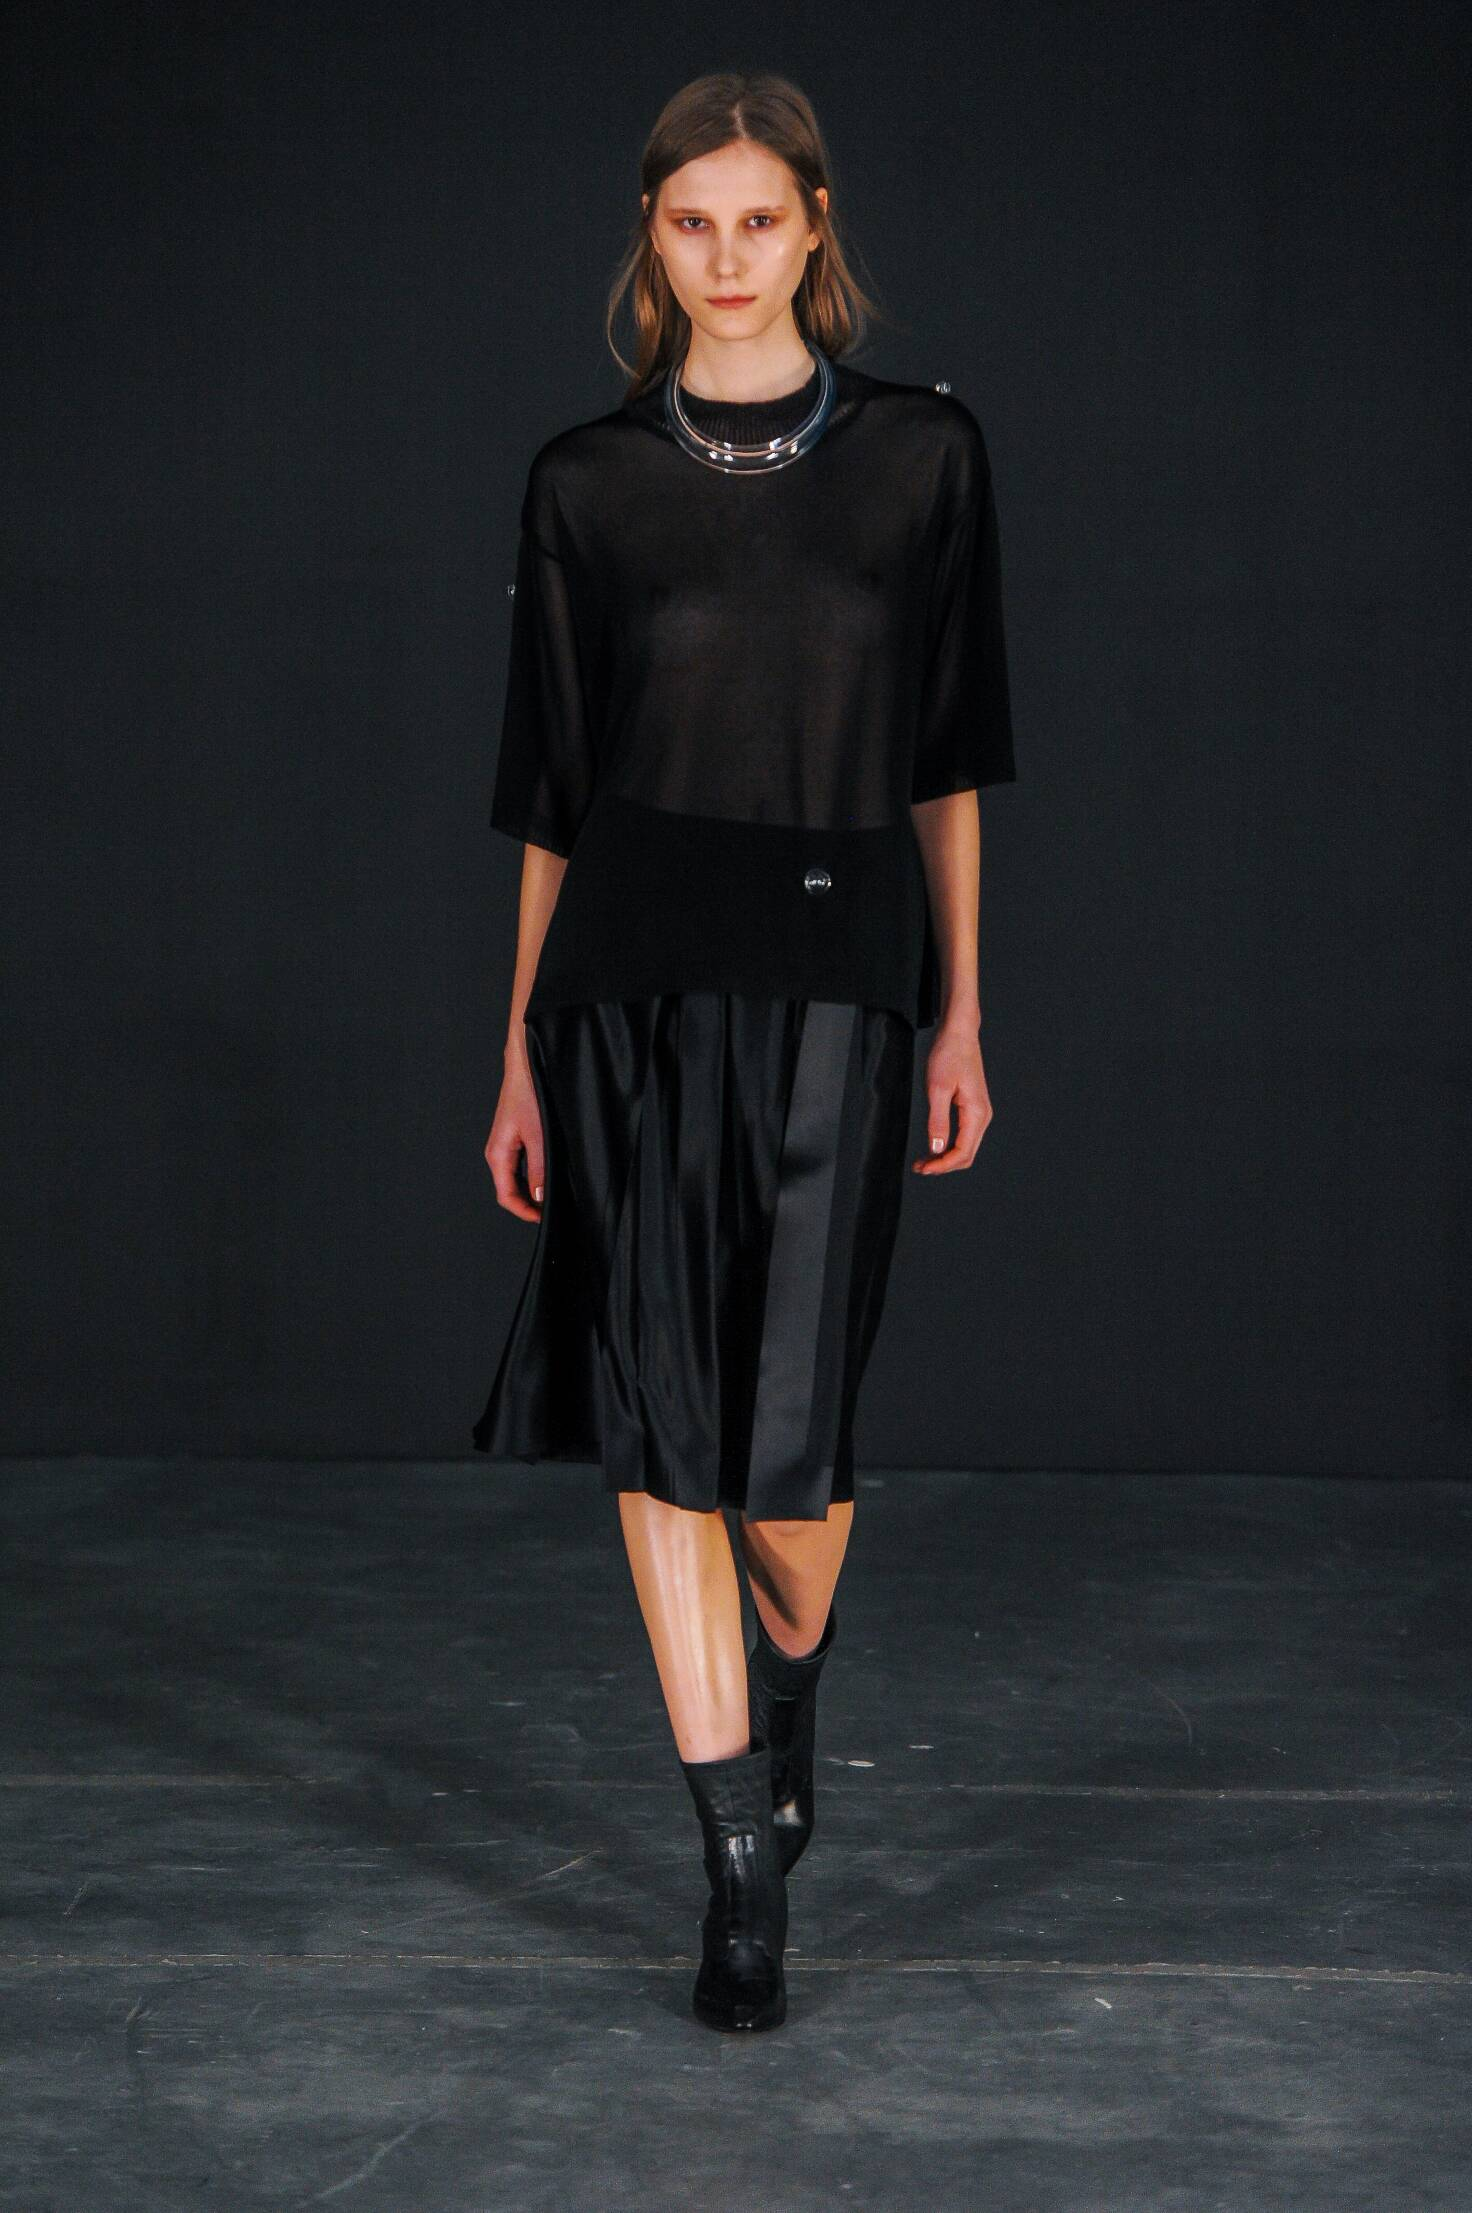 Thomas Tait Fall Winter 2015 16 Womens Collection London Fashion Week